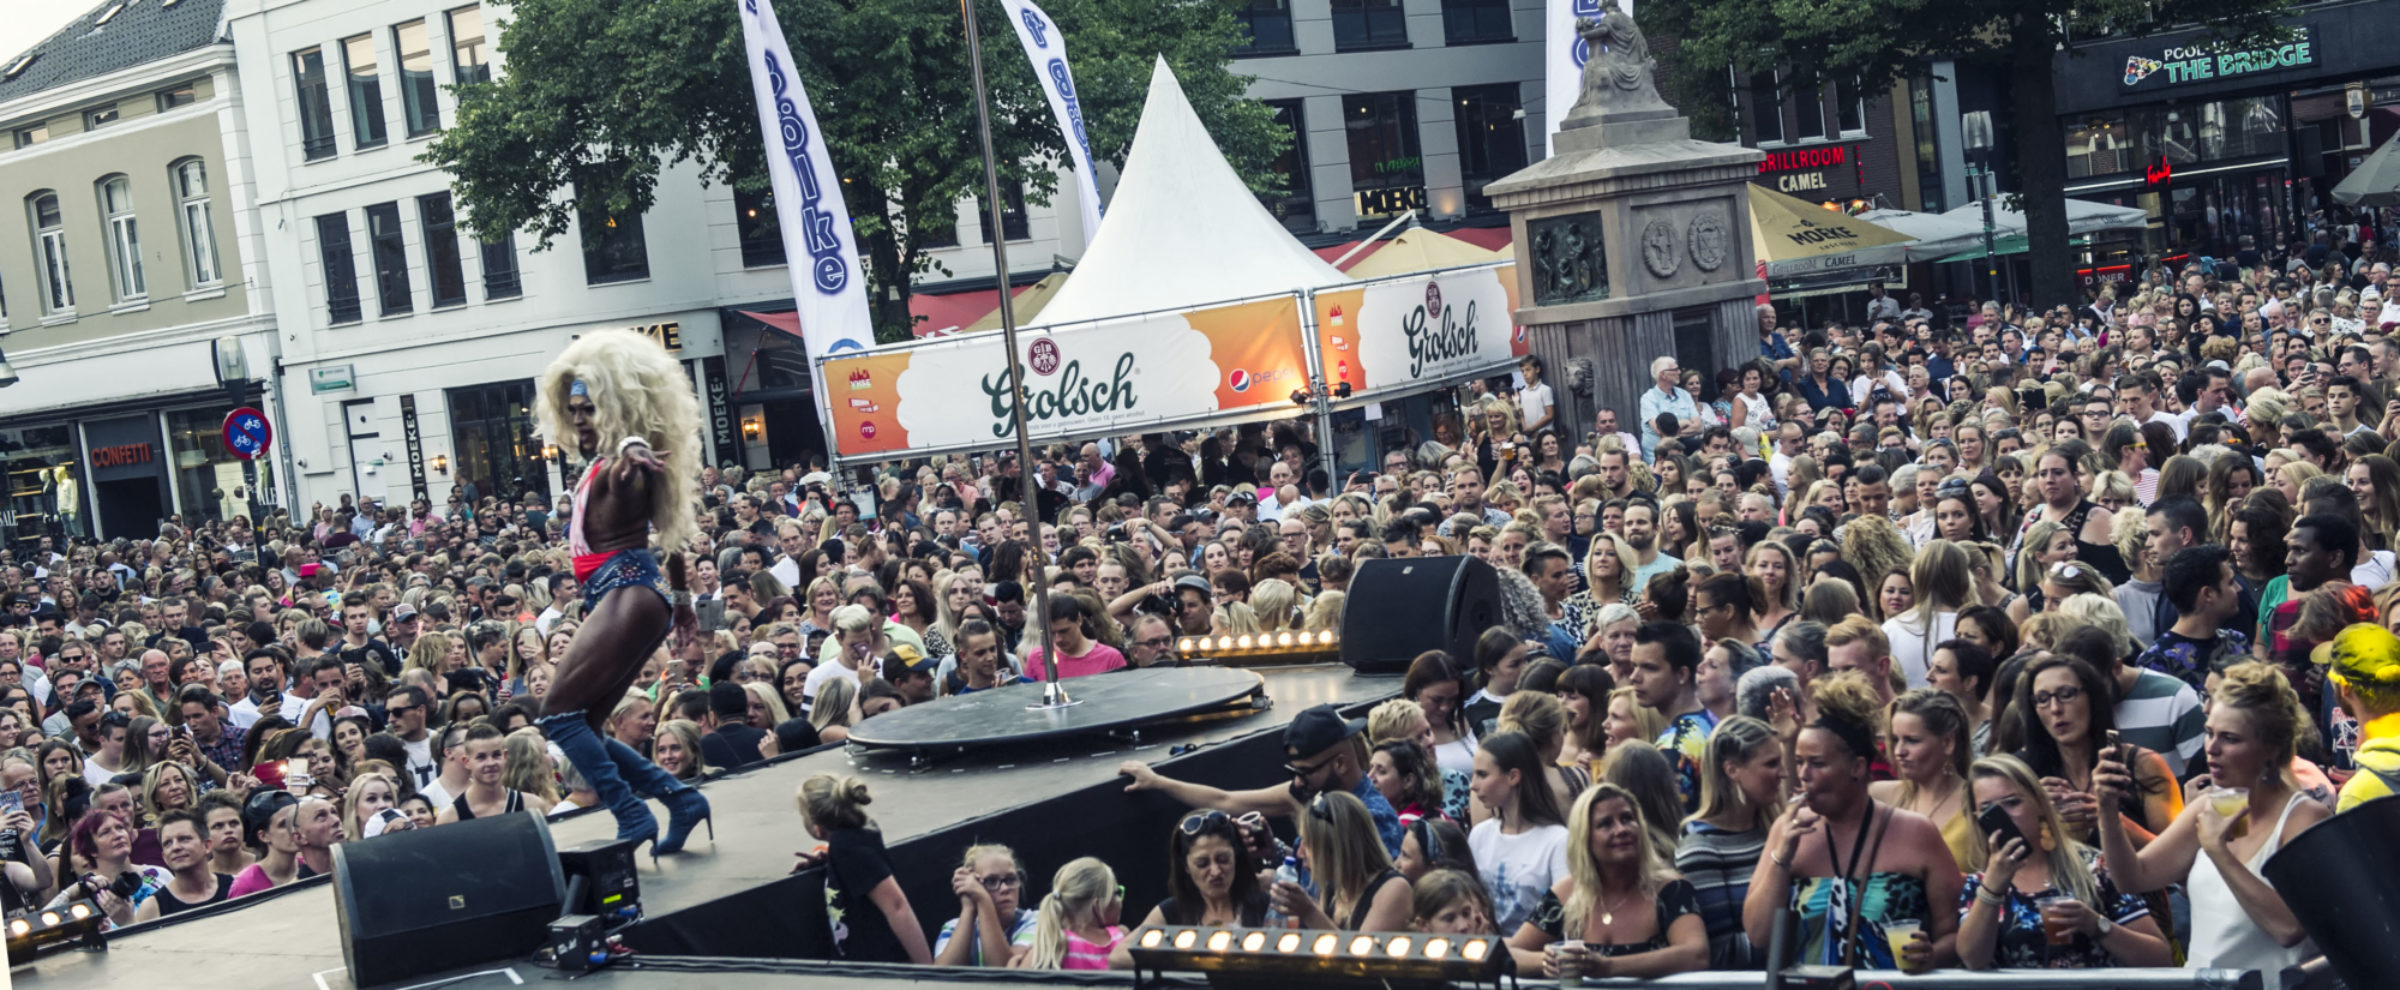 2018 Roy Te Lintelo Grolsch Summer Sounds Evenementen 38